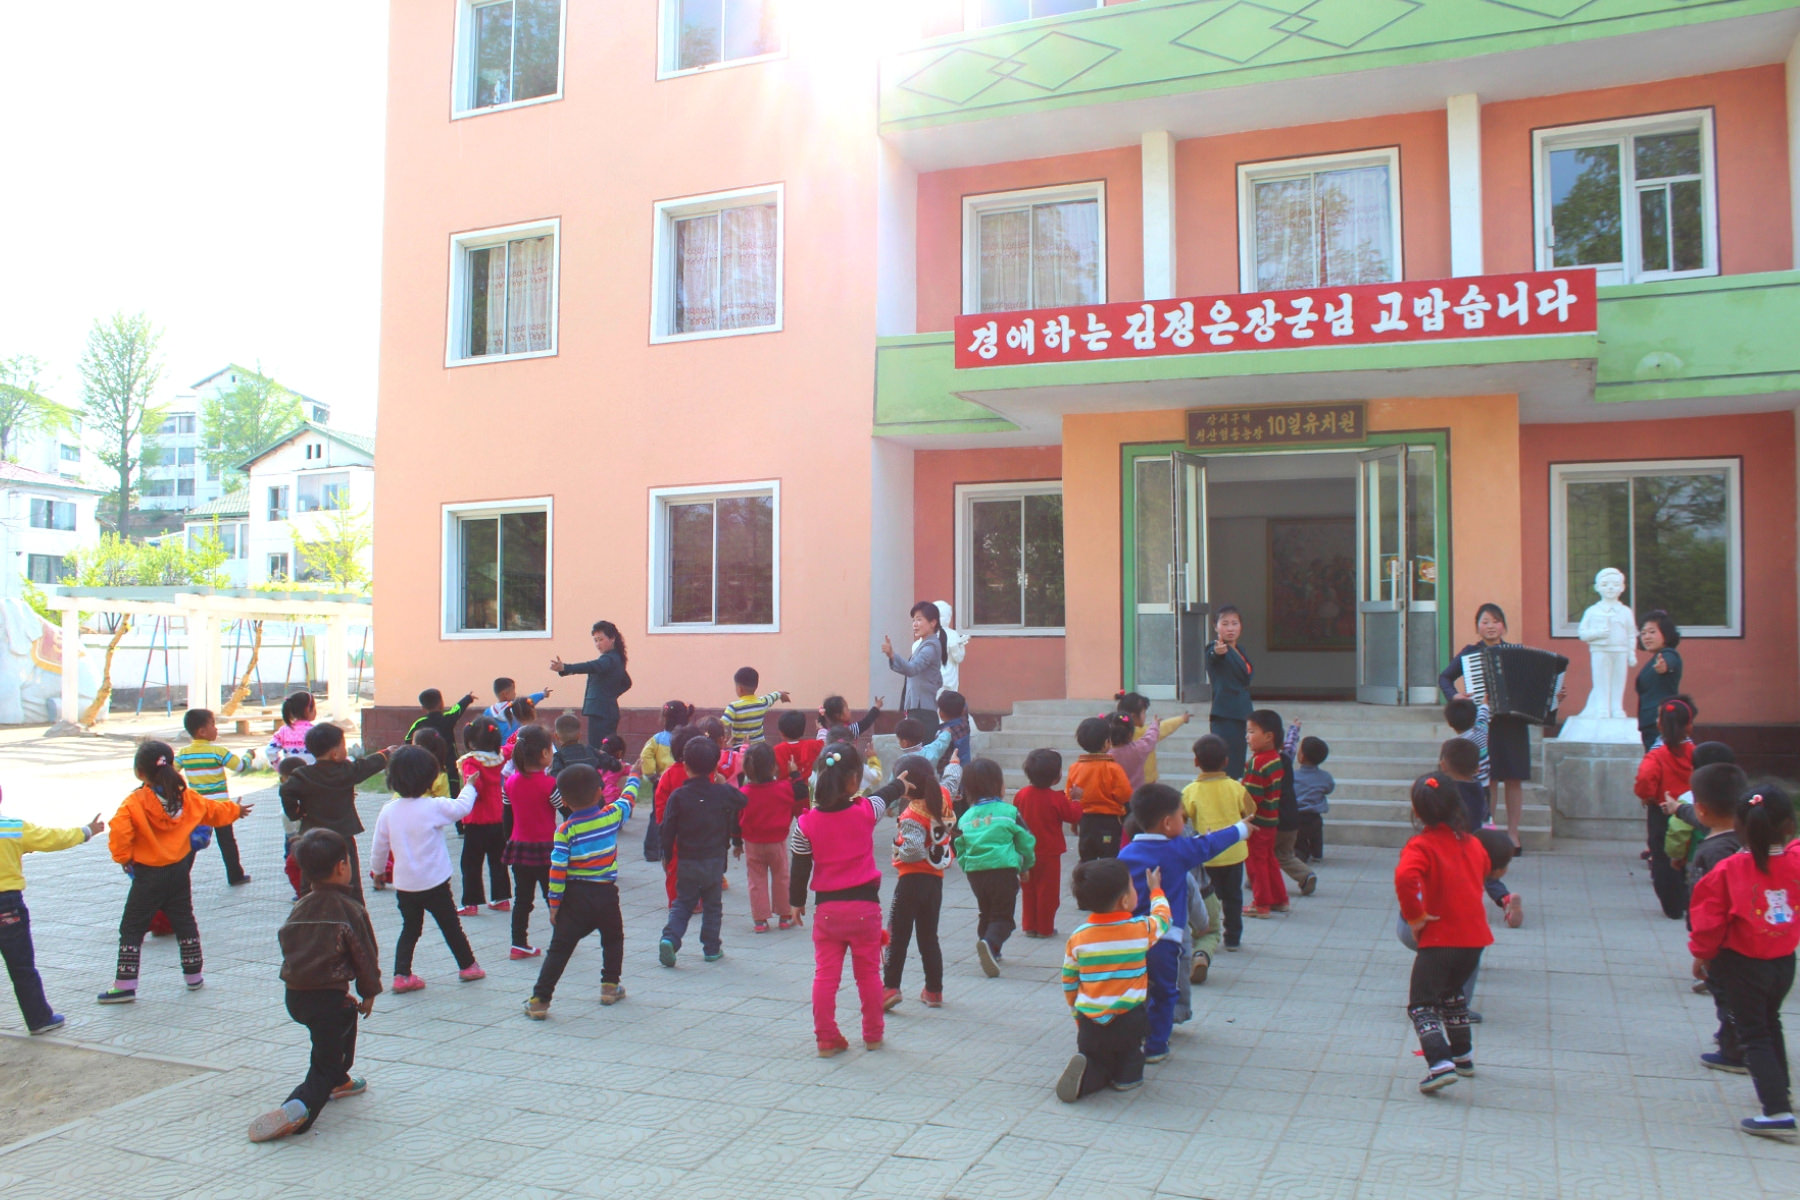 Chongrangri Farm, North Korea (DPRK) with KTG. Children at the farm kindergarten performing